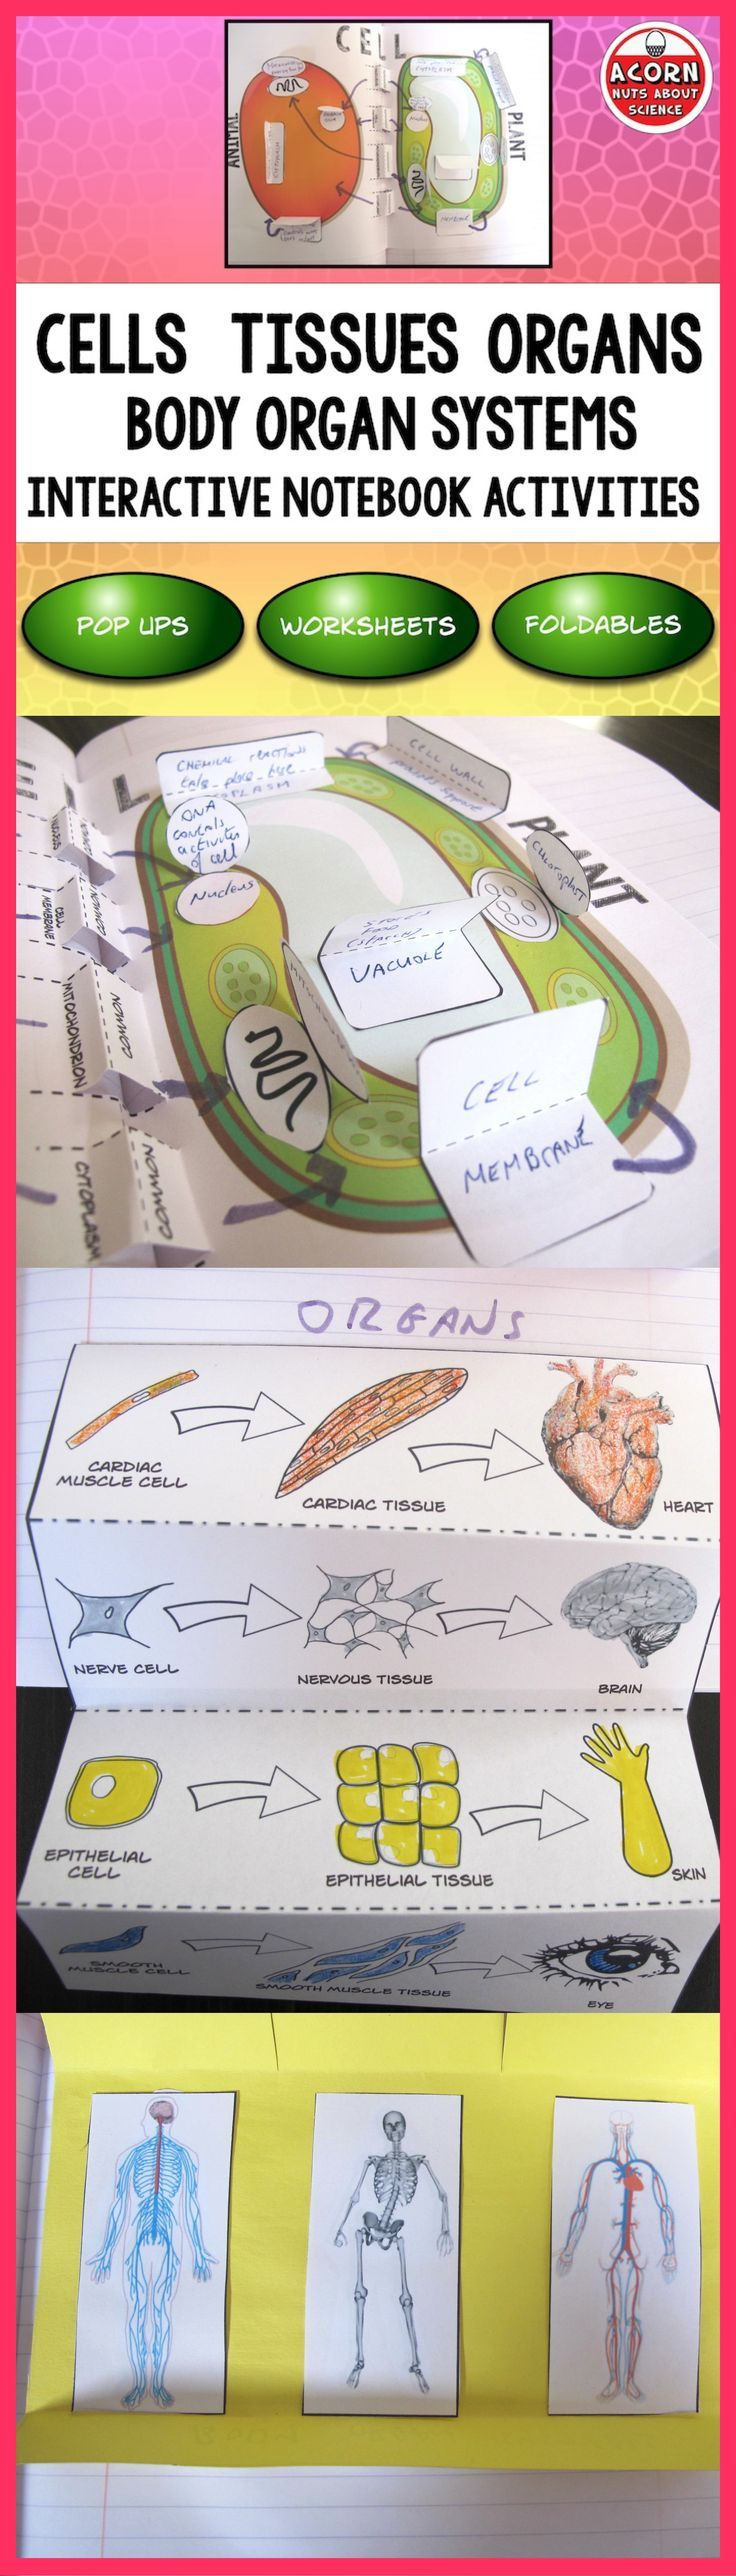 Levels Of Organization Cells Tissues Organs Interactive Notebook Teaching Biology Science Classroom Science Cells